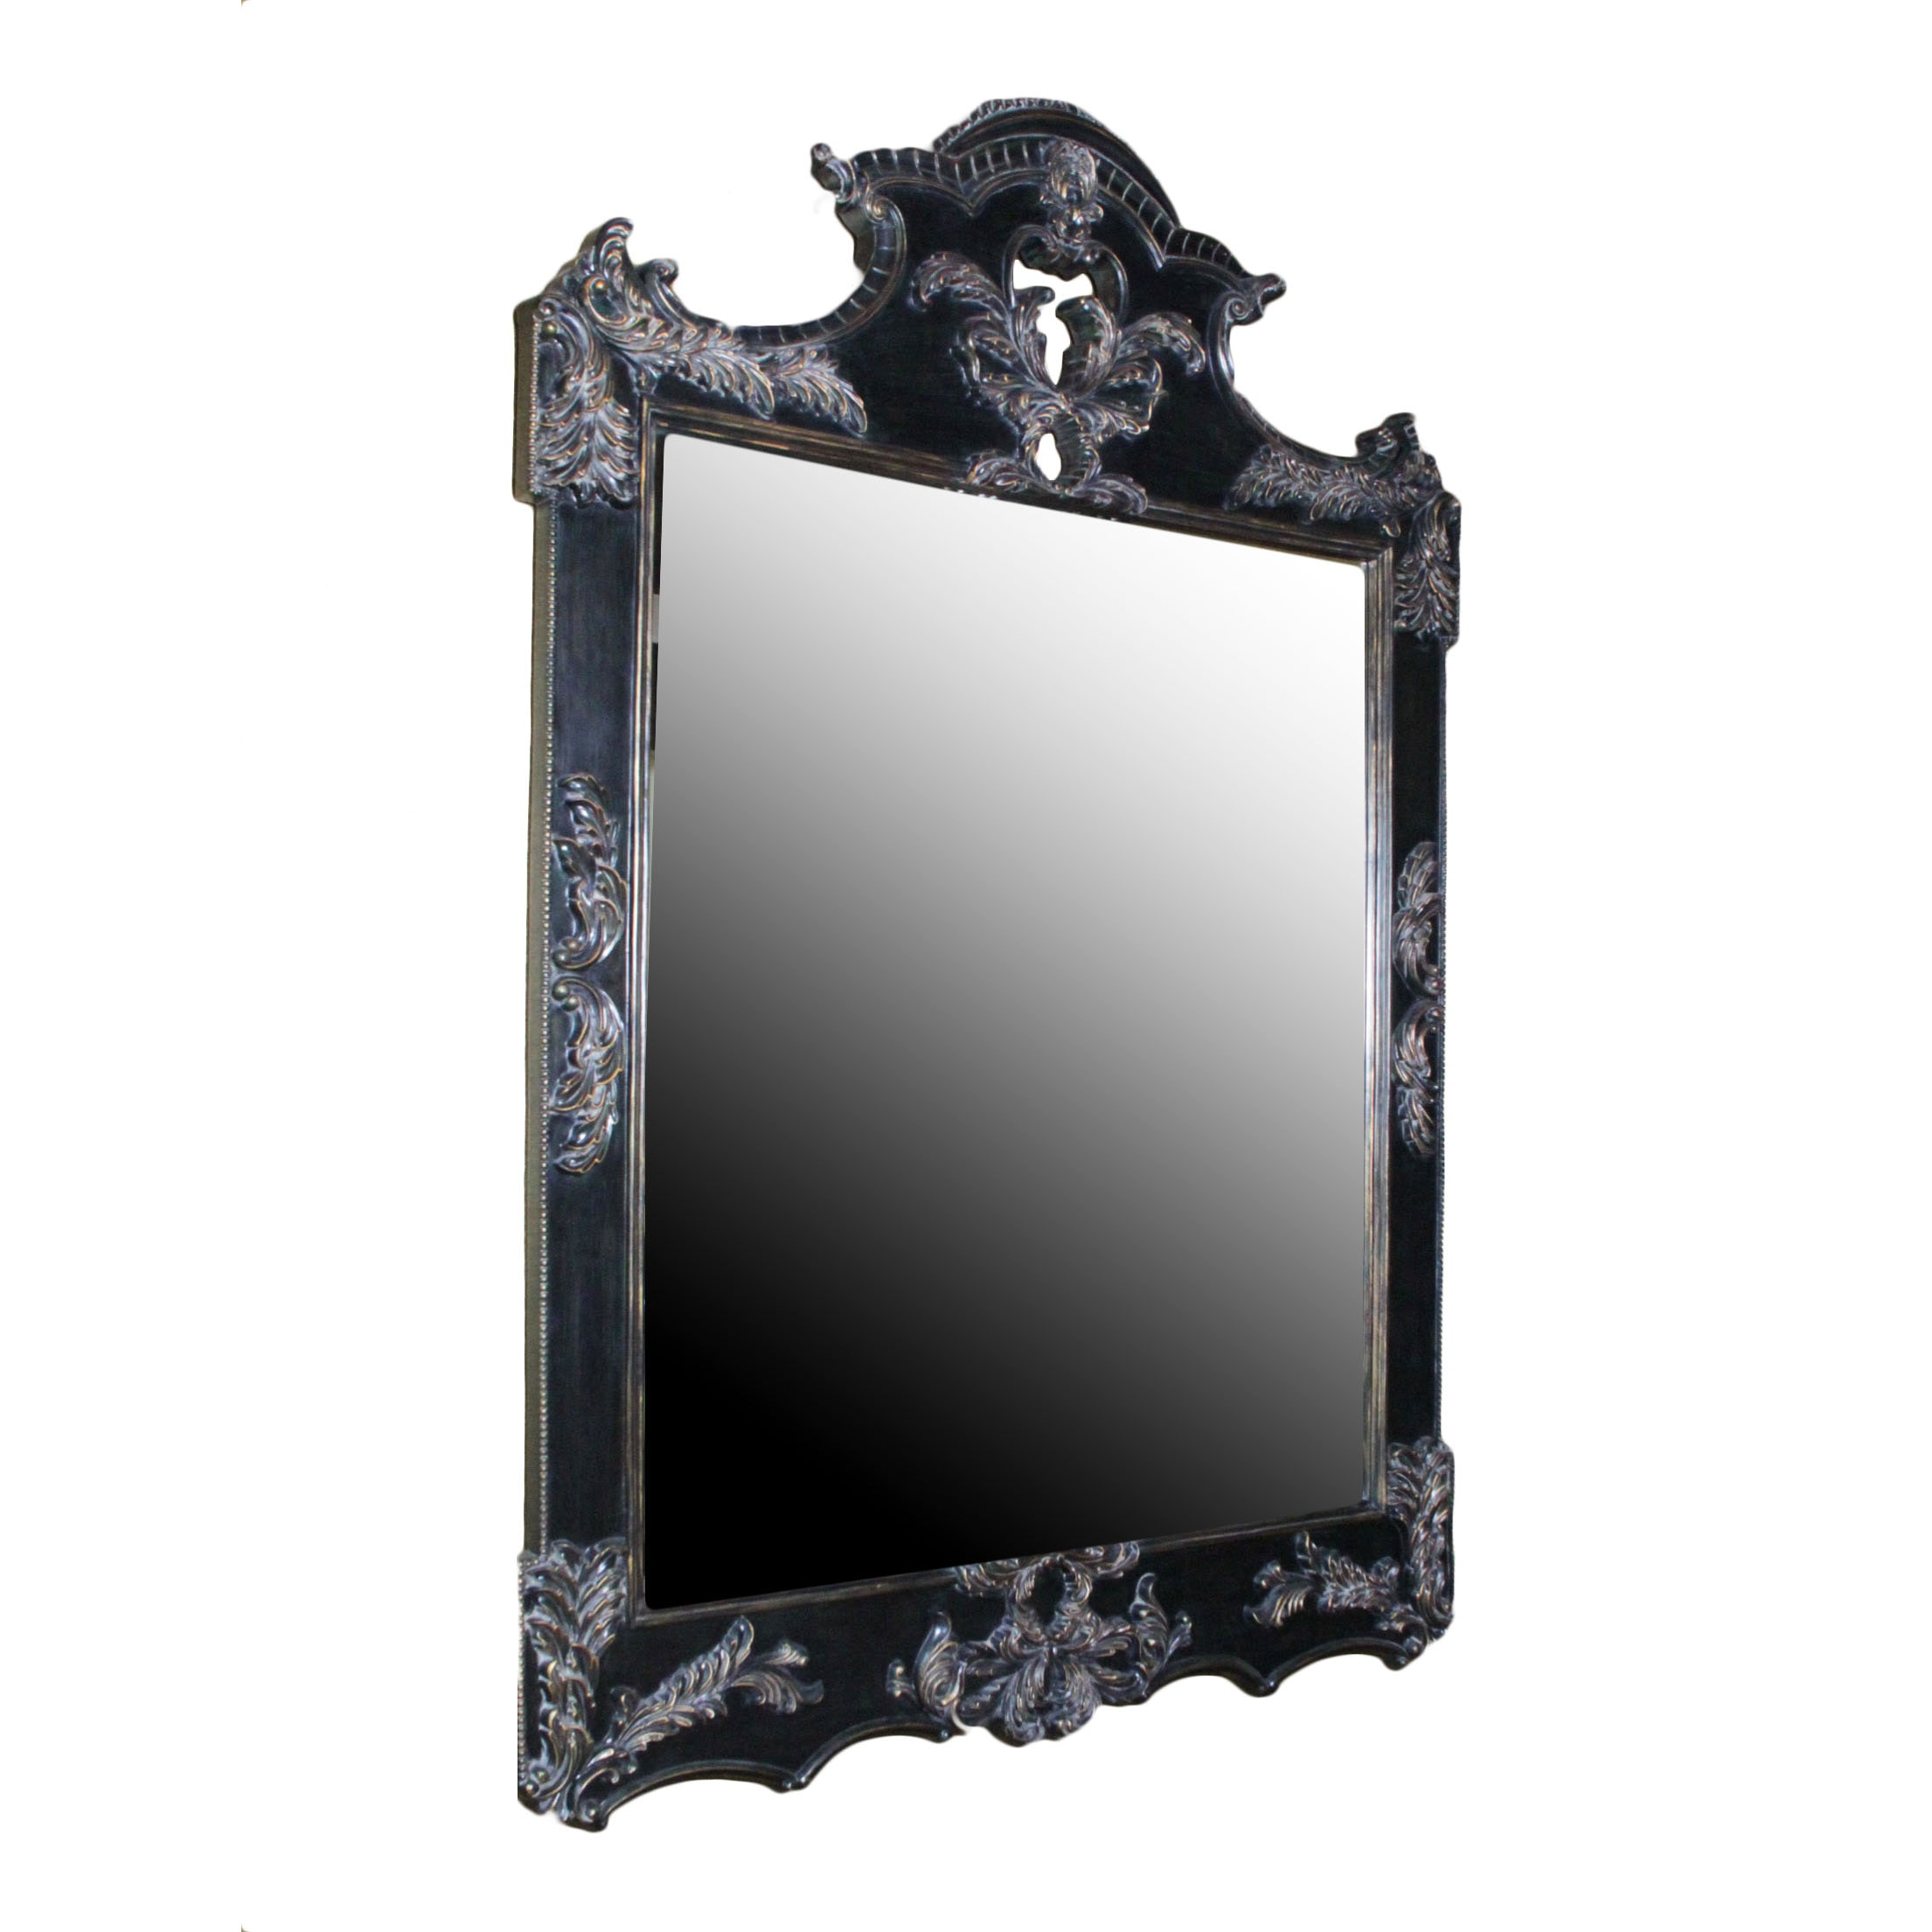 Large Framed Beveled Glass Wall Mirror